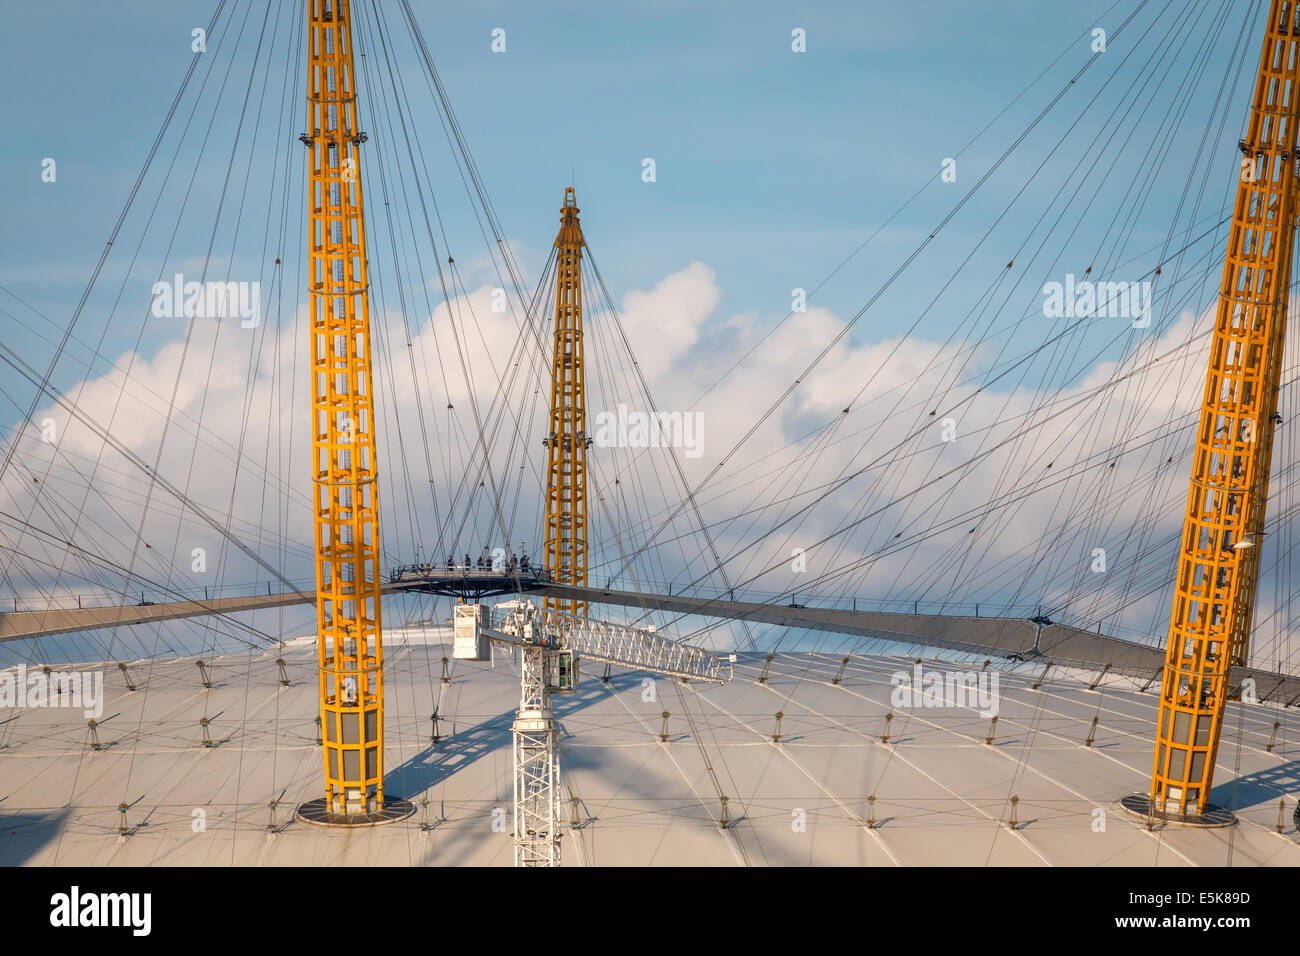 Detail of the O2 Arena's roof and people walking across - Stock Image